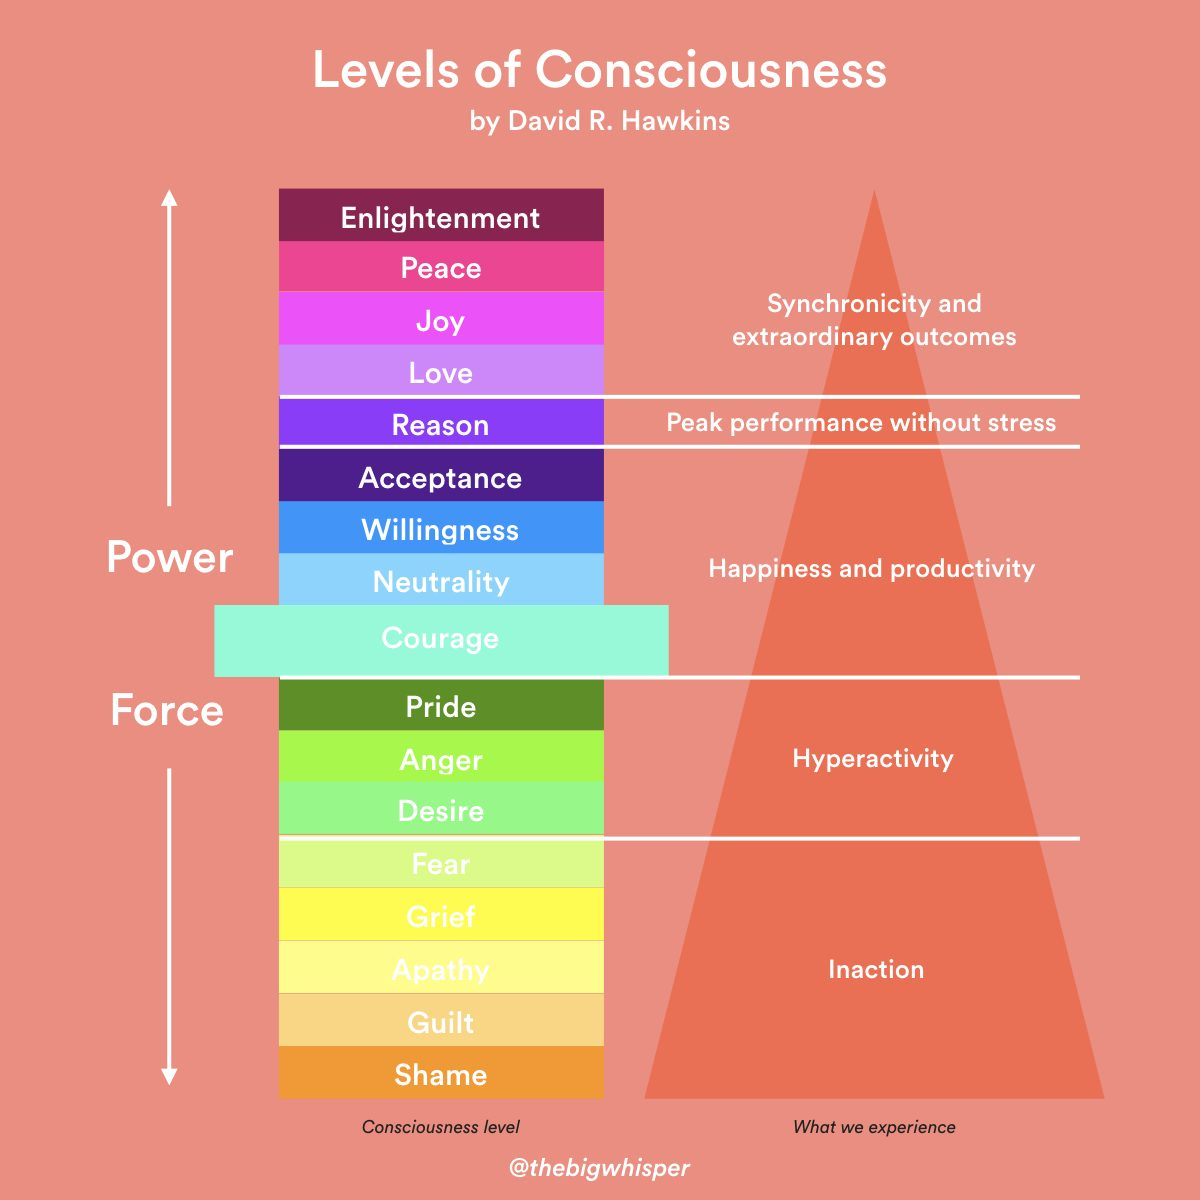 levels-of-consciousness-001-5796799